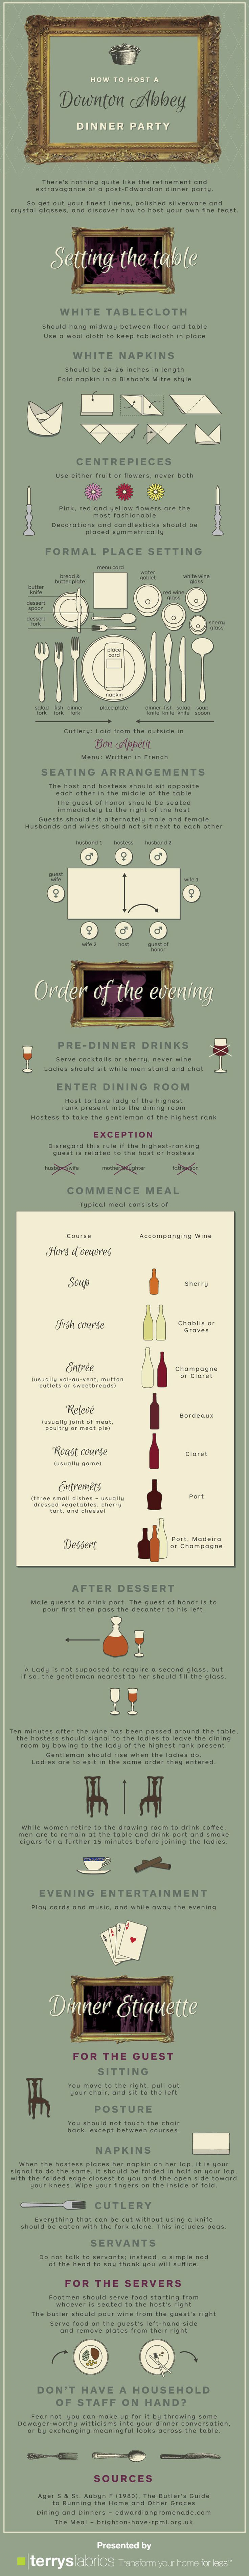 Infographic: How To Host A Downton Abbey Dinner Party